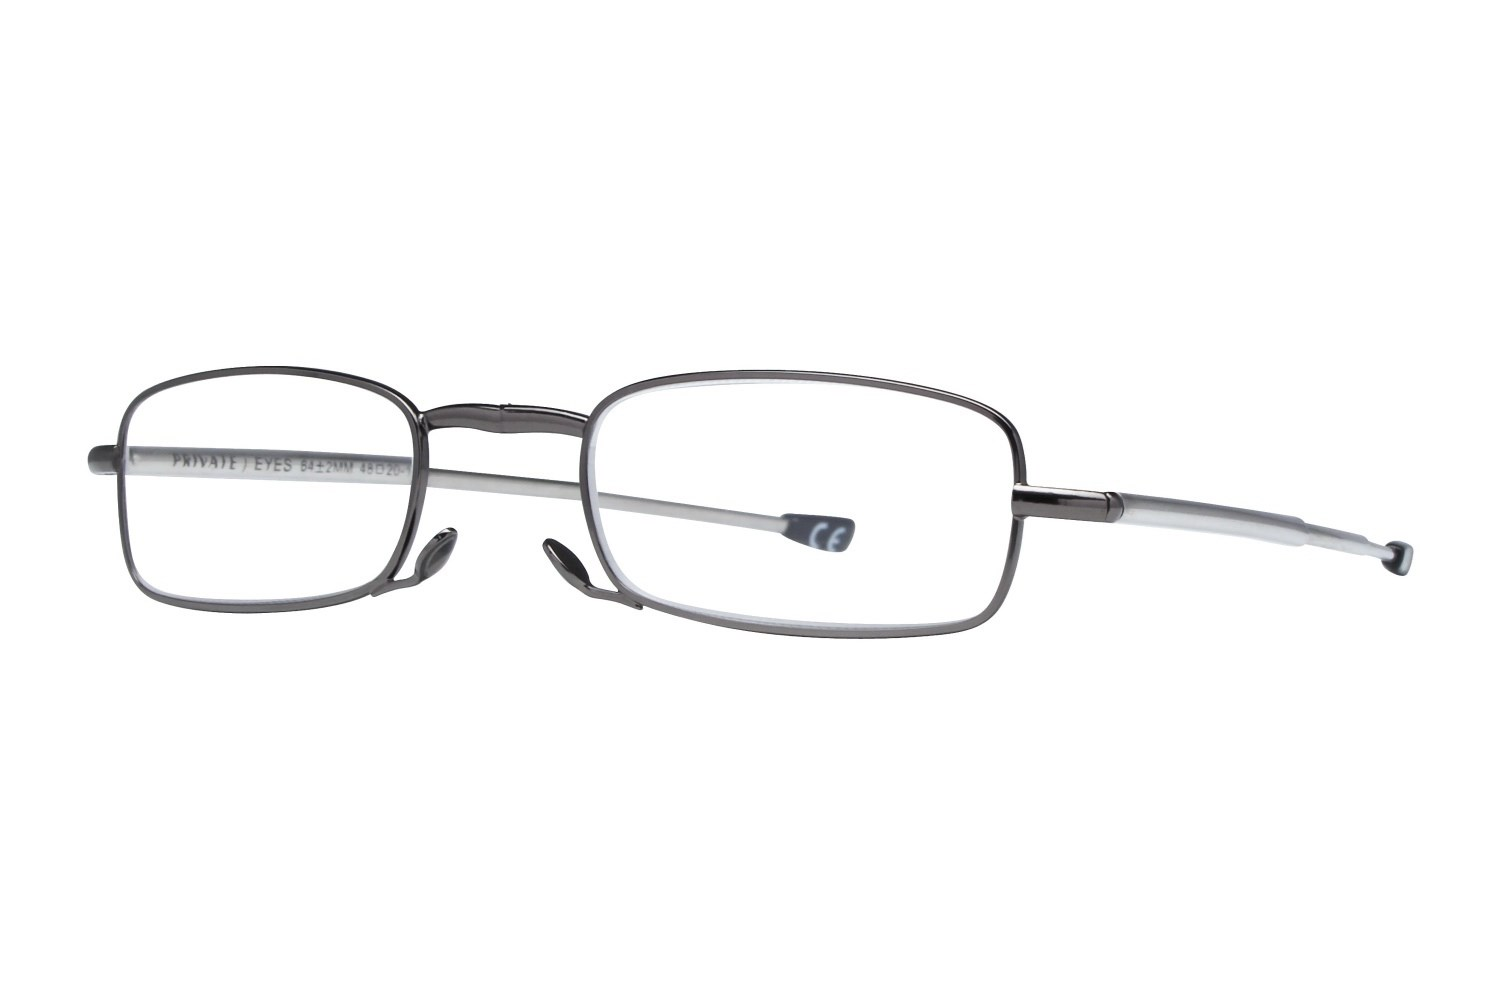 Magnivision Gideon Microvision Reading Glasses